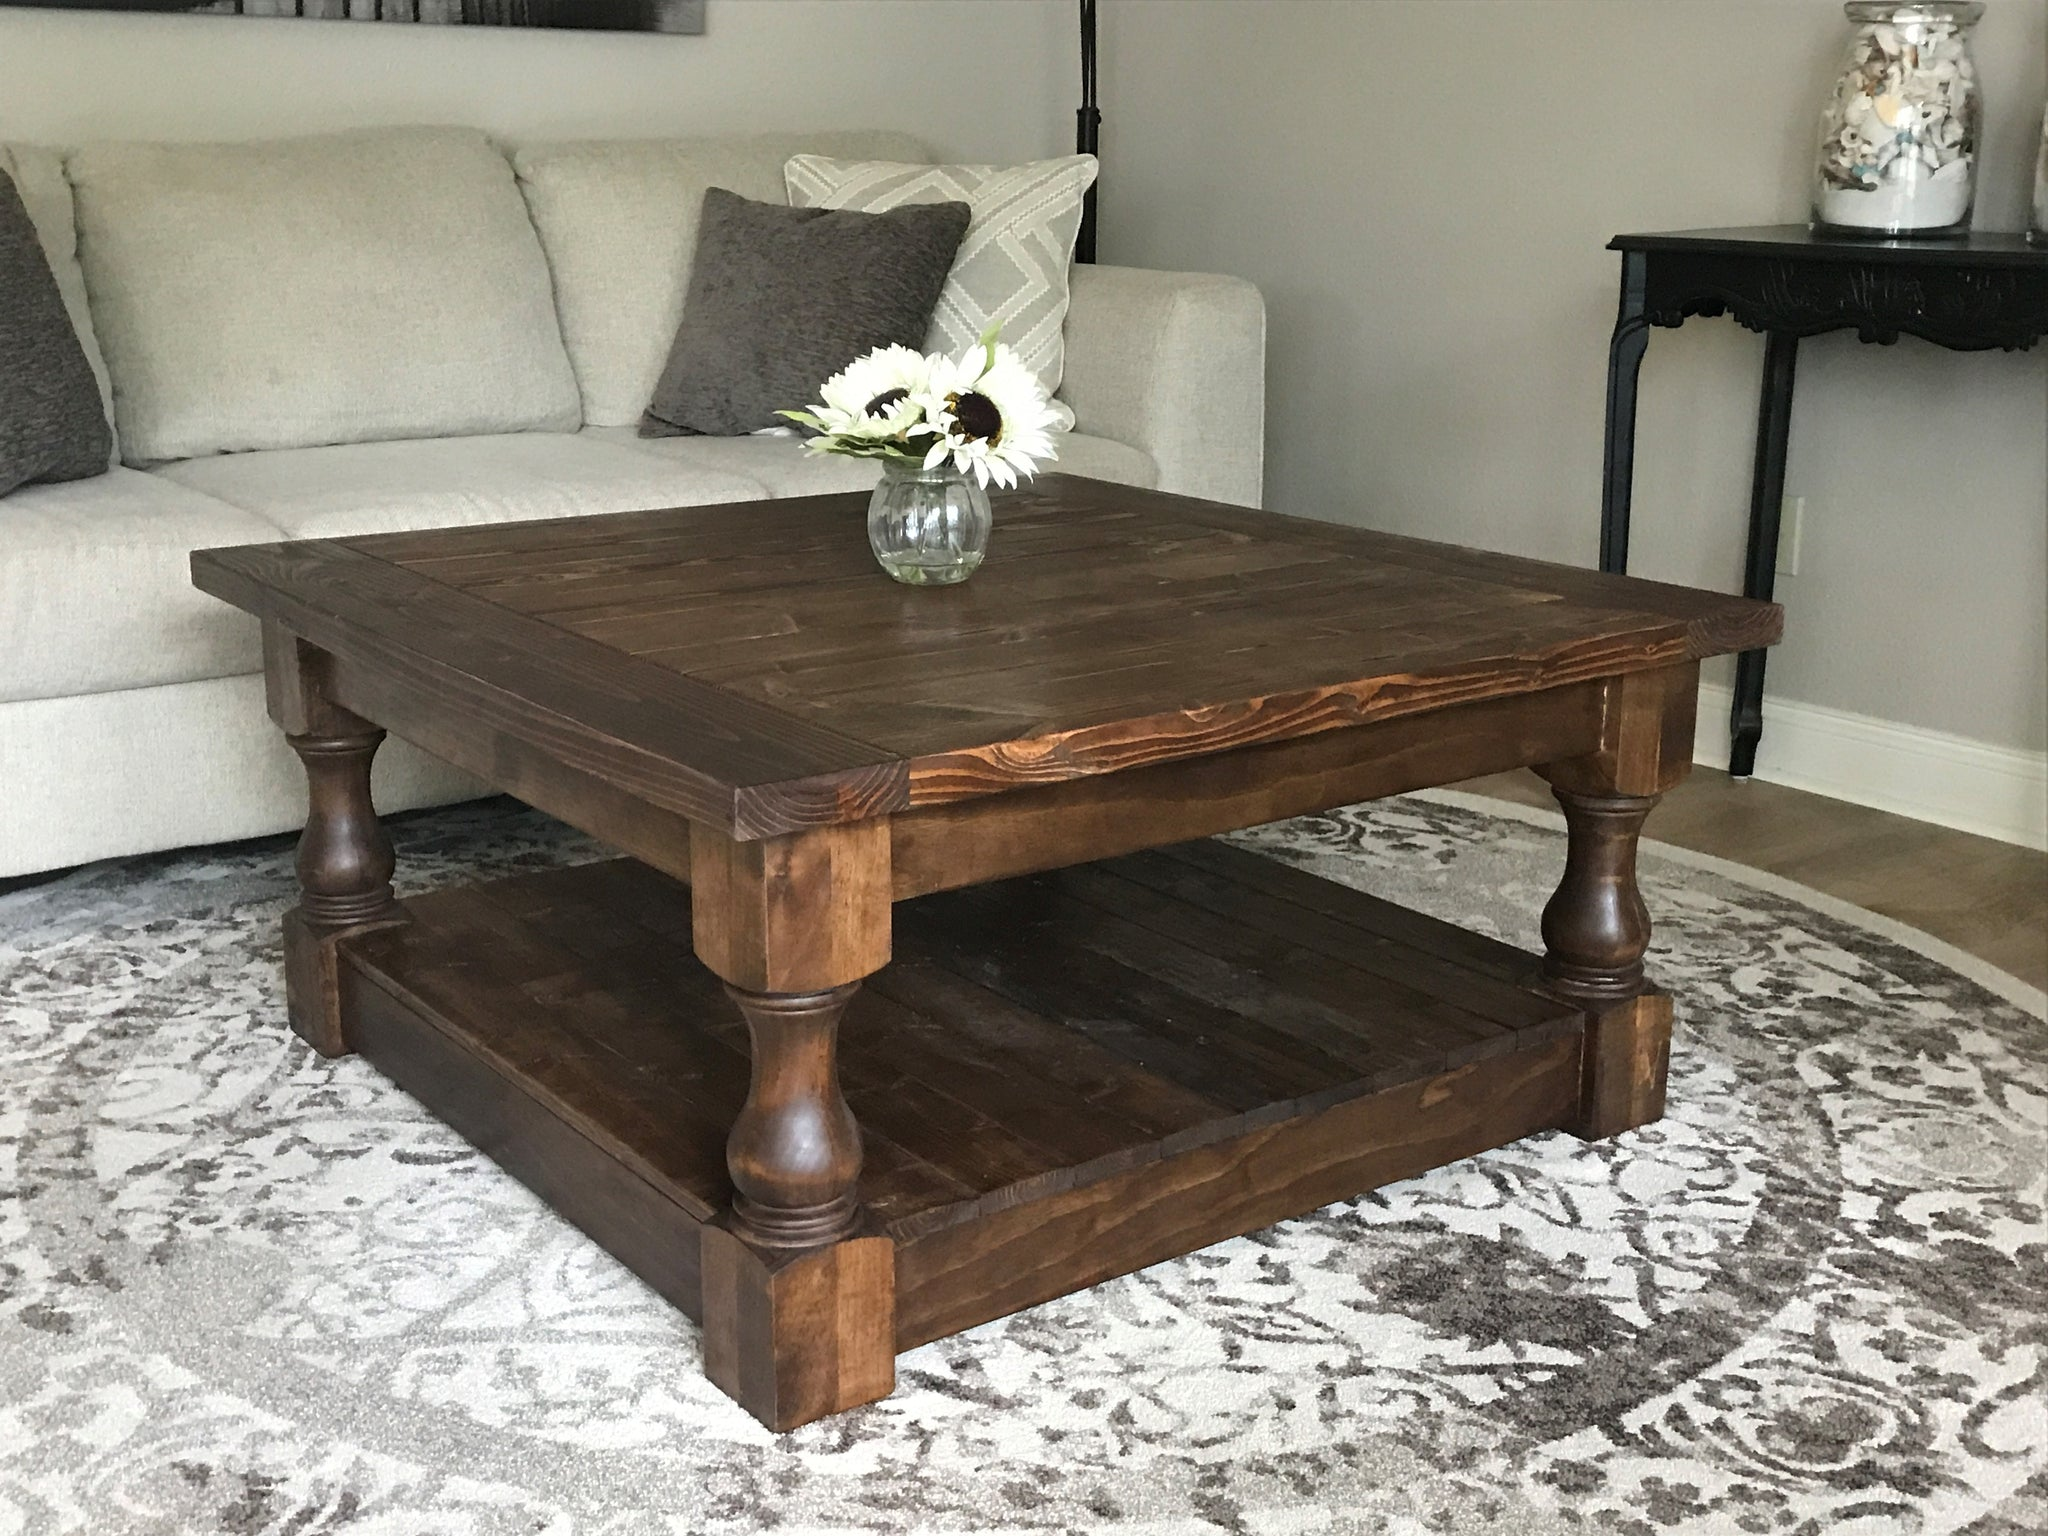 Rustic Coffee Table.Stained Farmhouse Style Rustic Coffee Table